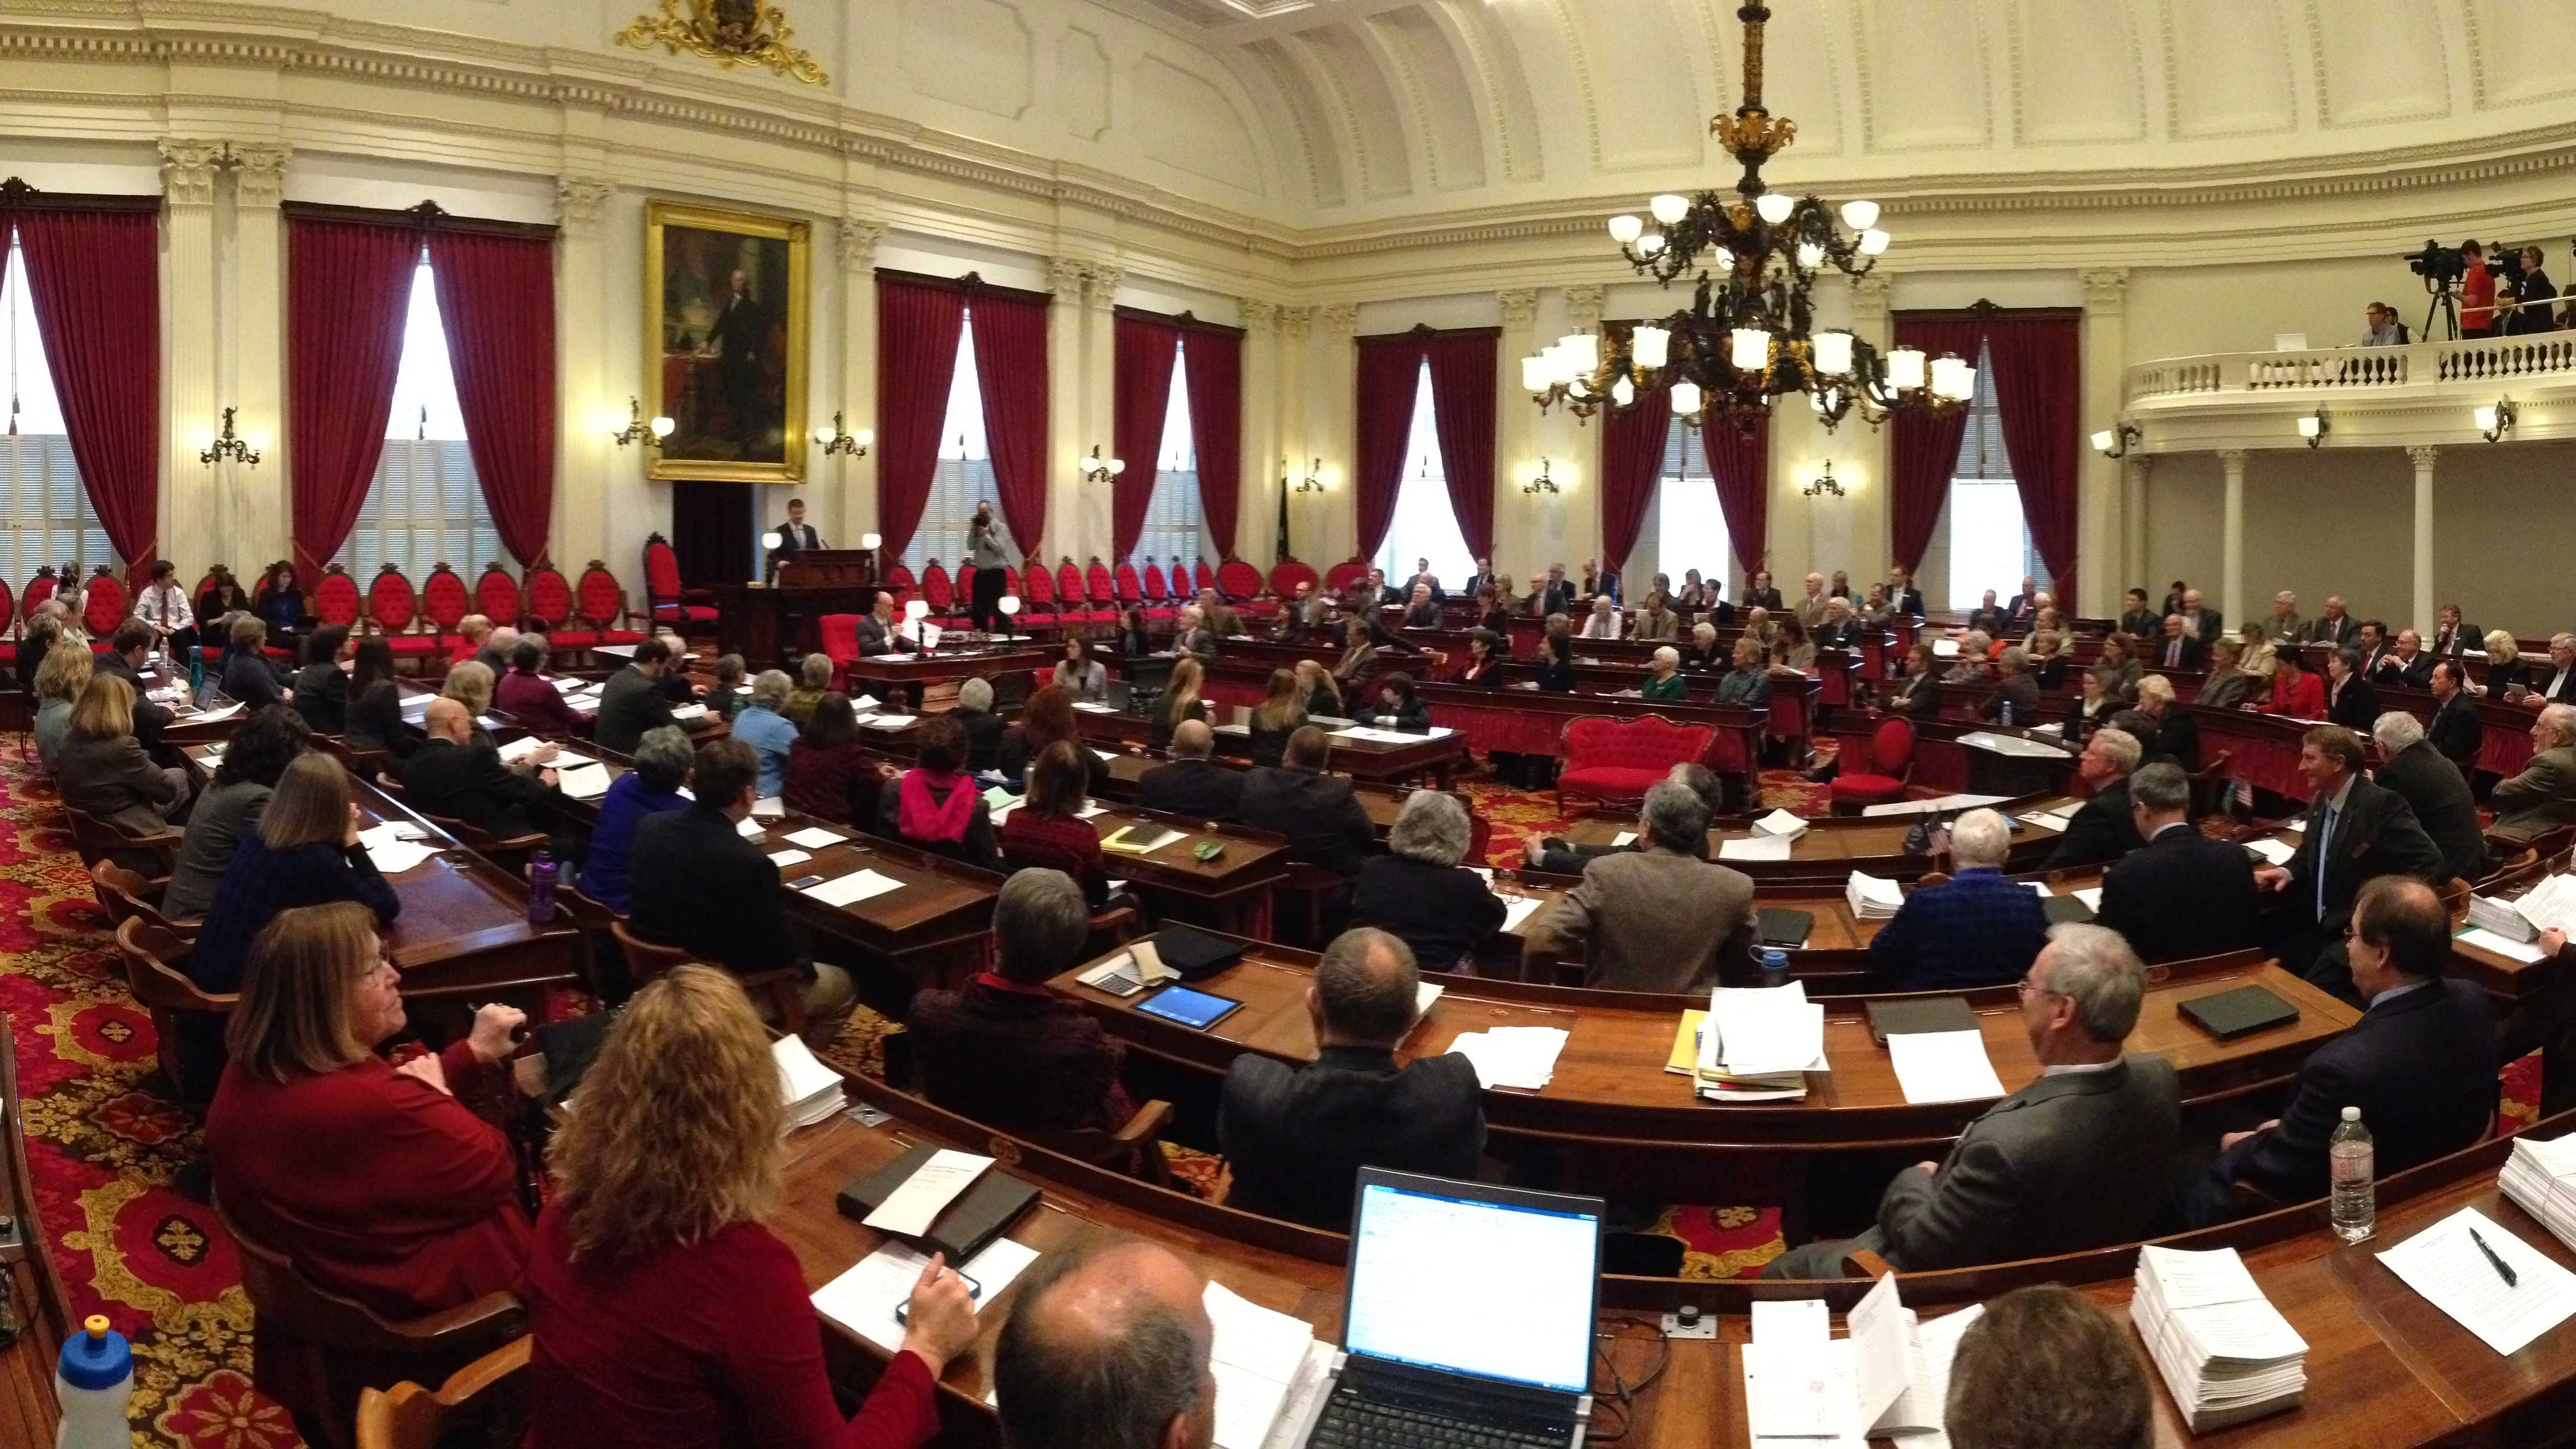 Speaker Shap Smith addresses the House on opening day.